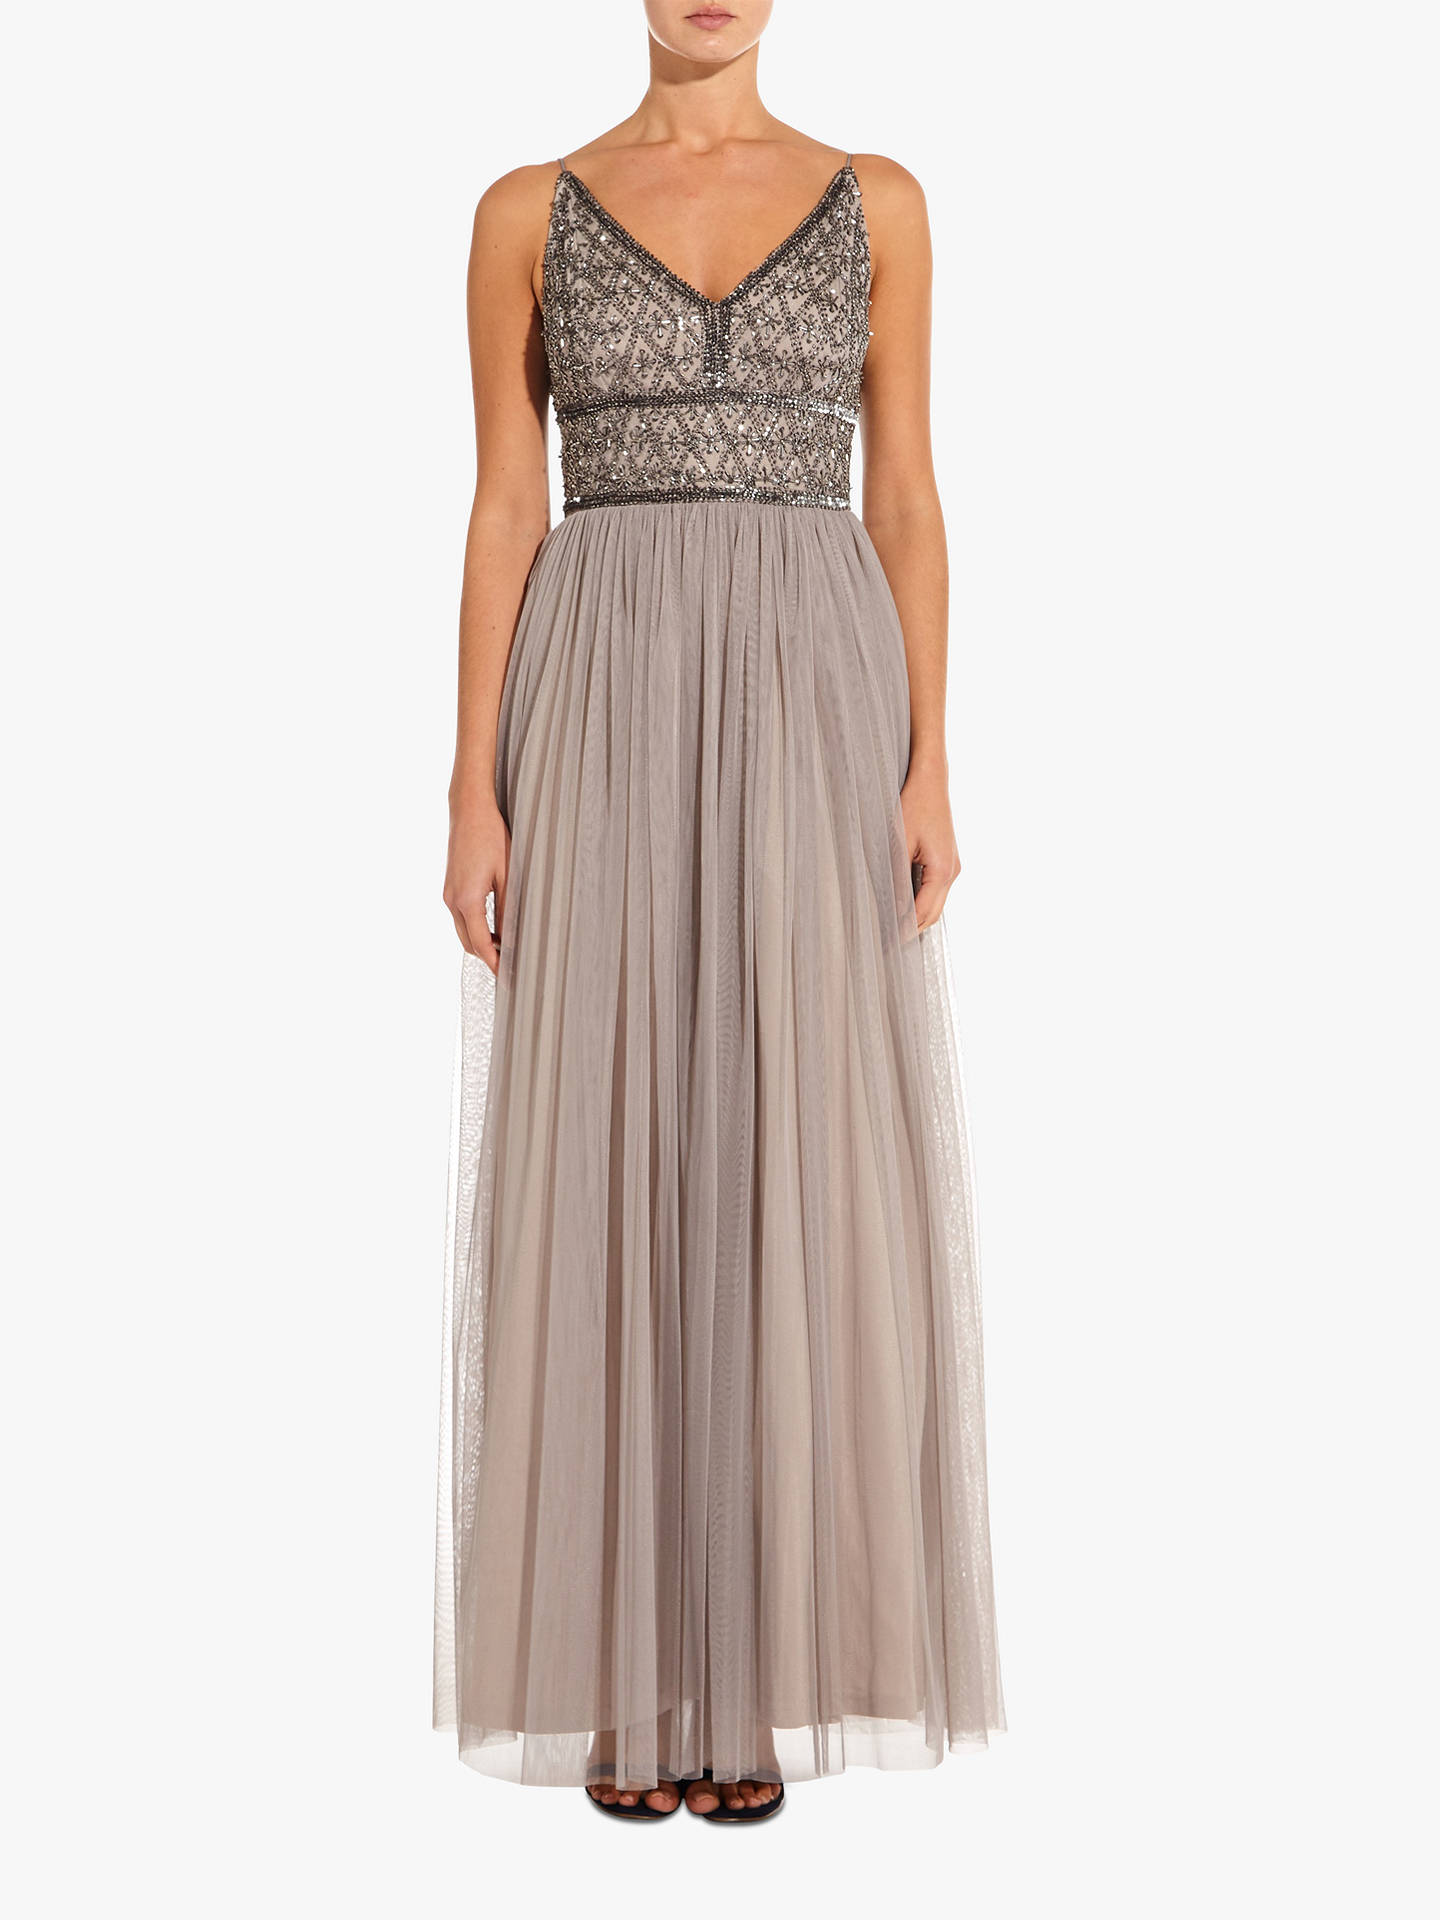 9dc6a17ce Buy Adrianna Papell Beaded Bodice Maxi Dress, Platinum, 6 Online at  johnlewis.com ...